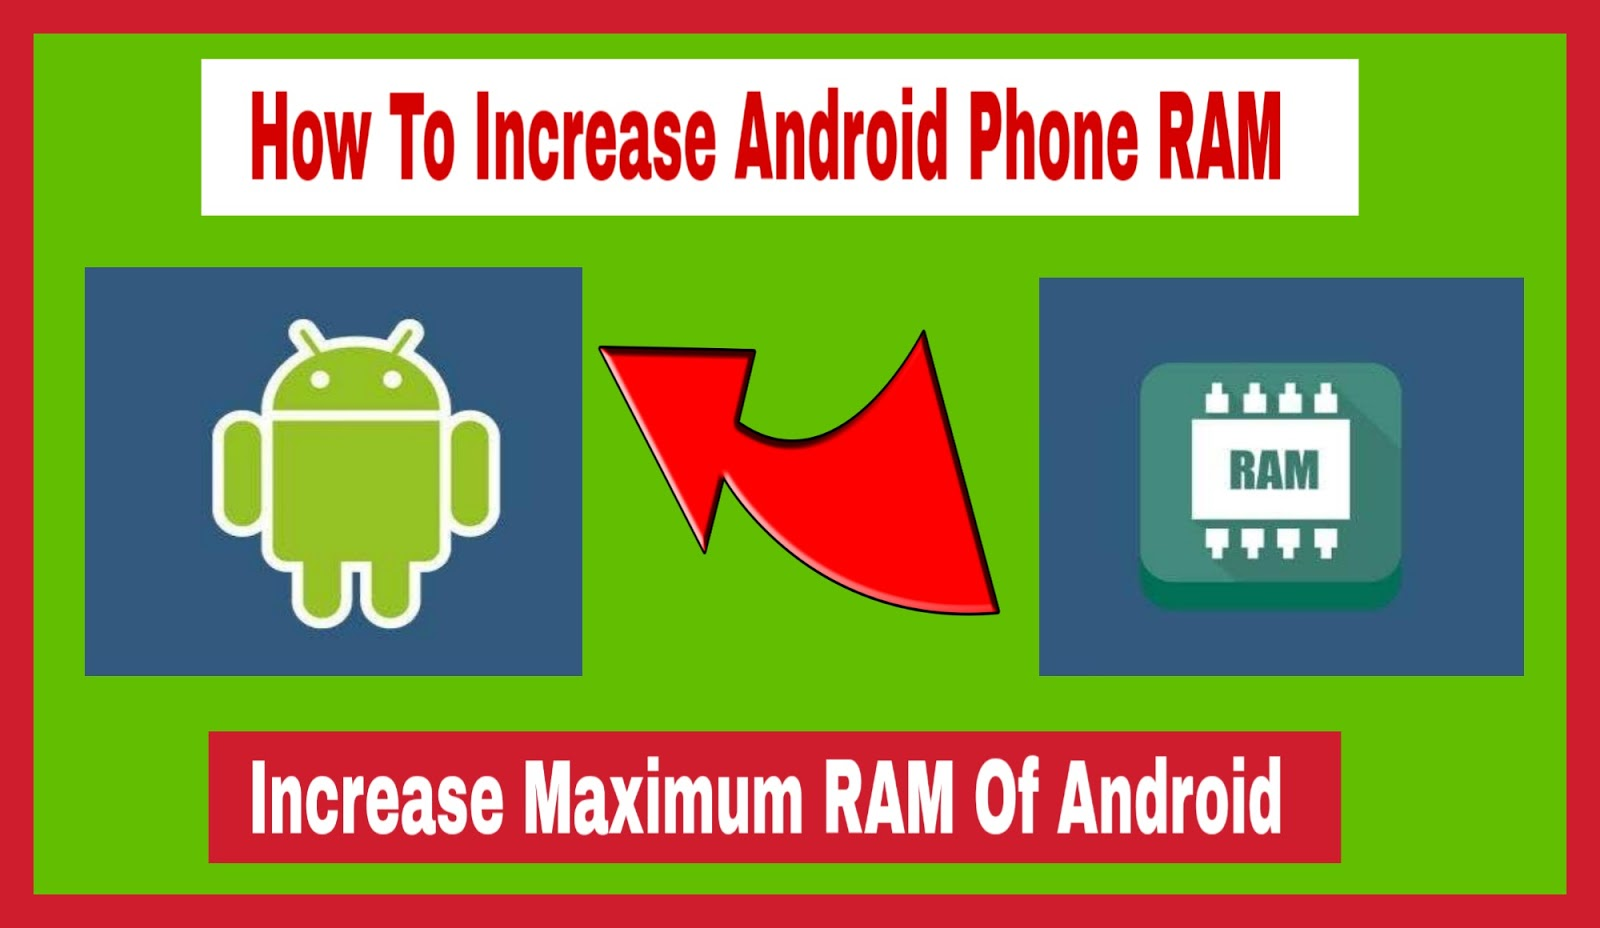 How To Increase Android Phone RAM